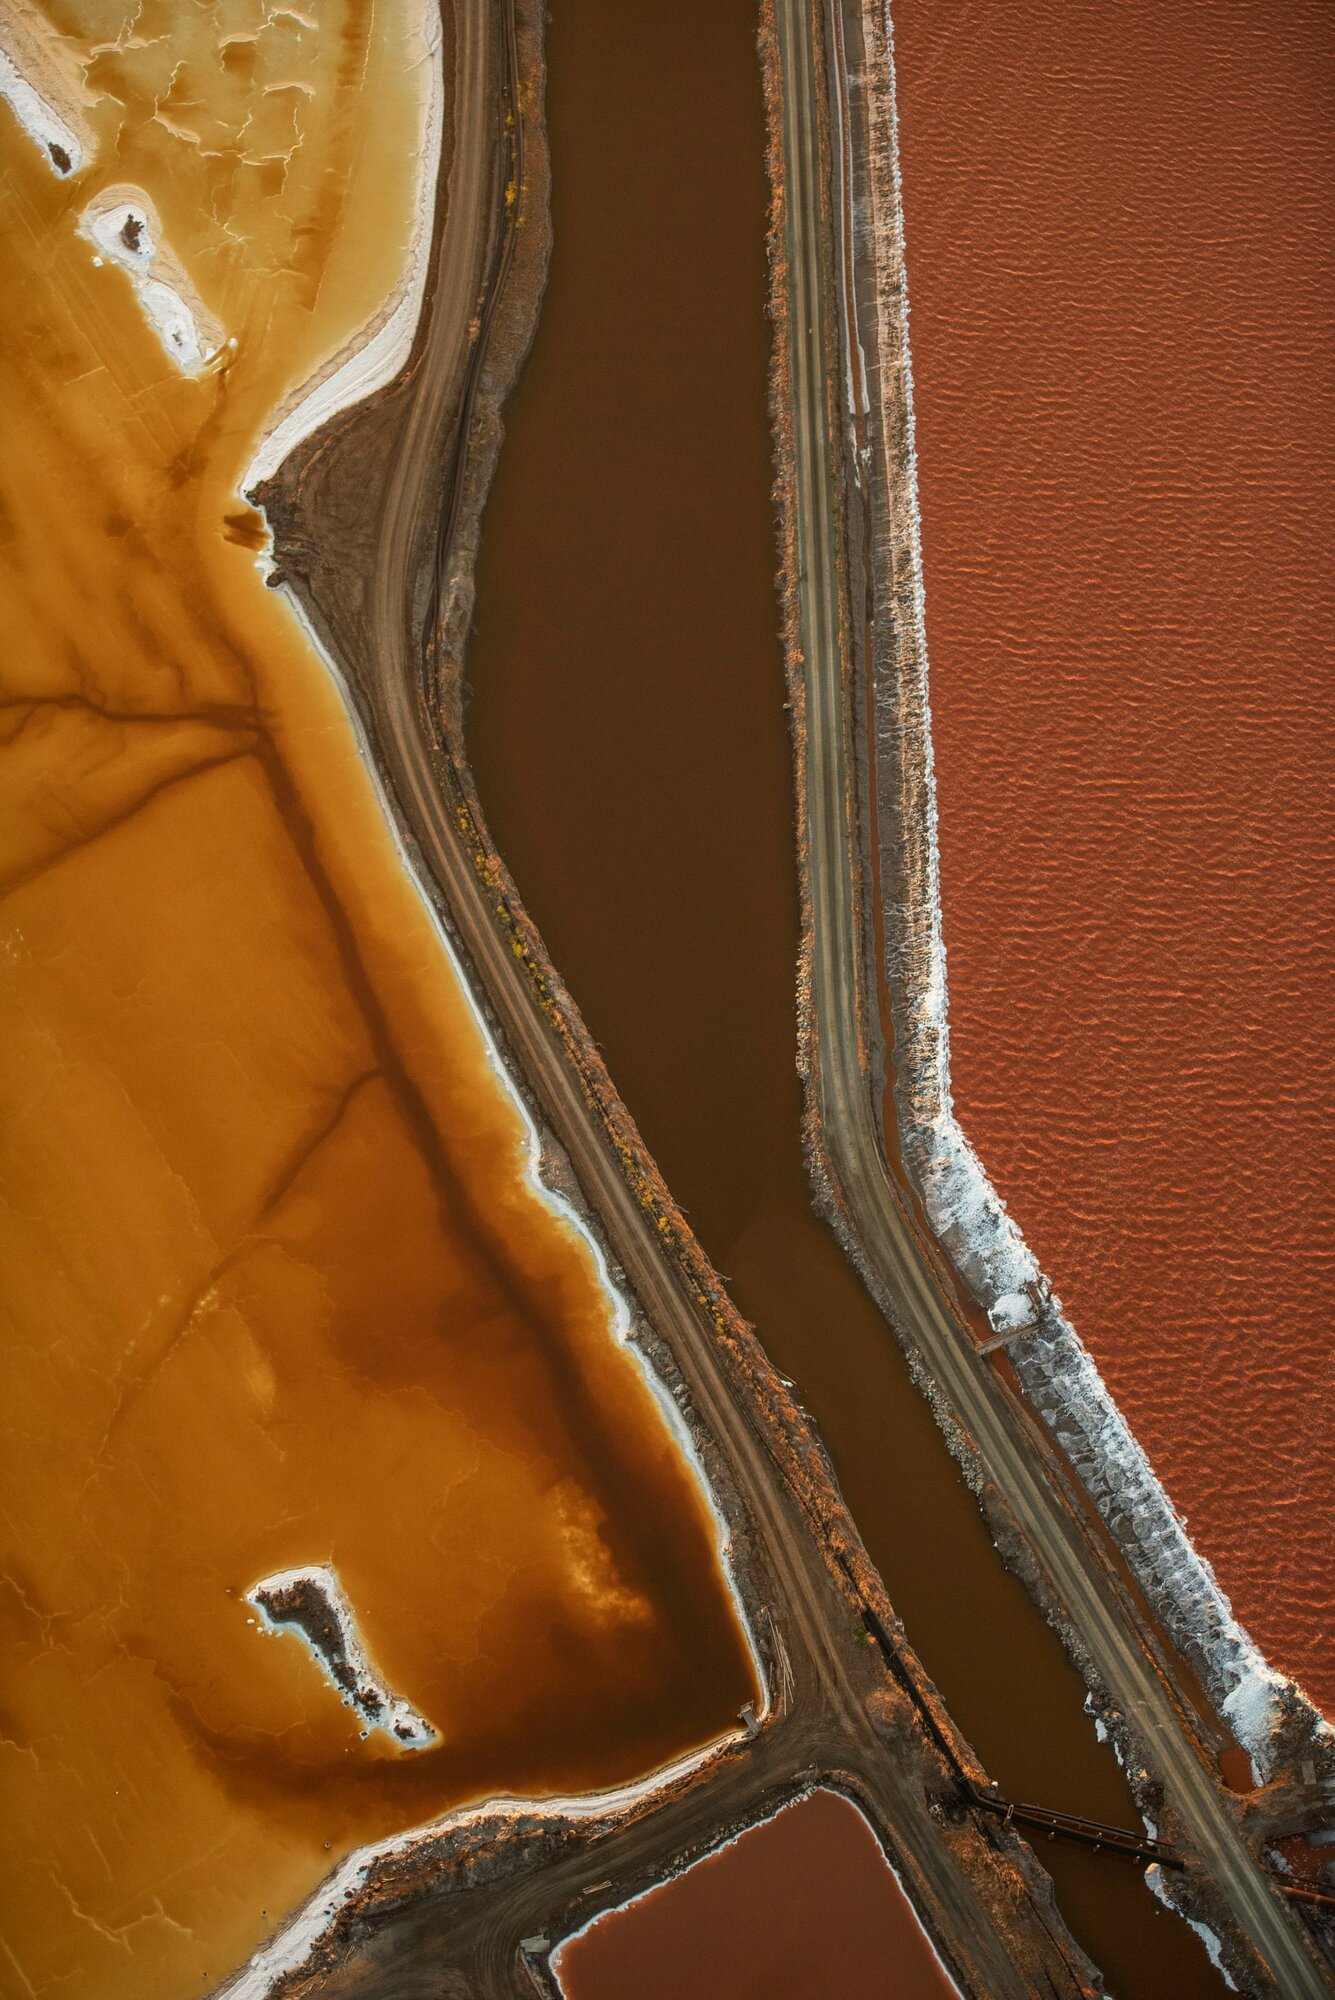 Landscape third place: Jassen Todorov, US'If you have flown into San Francisco international airport, you may have seen these colourful salt ponds over the bay,' Todorov said. 'I have photographed them numerous times, as the colours and patterns constantly change thanks to microorganisms and salinity. This aerial image was taken while flying my plane.'Photograph: Jassen Todorov/TNC photo contest 2021